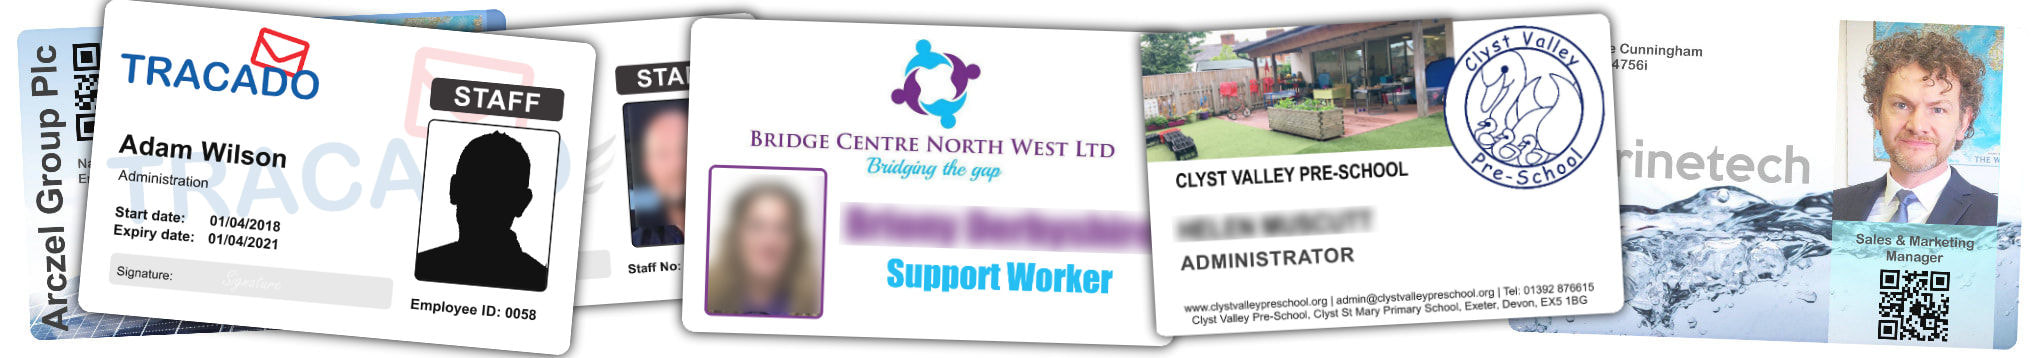 Huddersfield examples of staff photo ID cards | samples of employee Identity card printing | Workers ID cards printed in